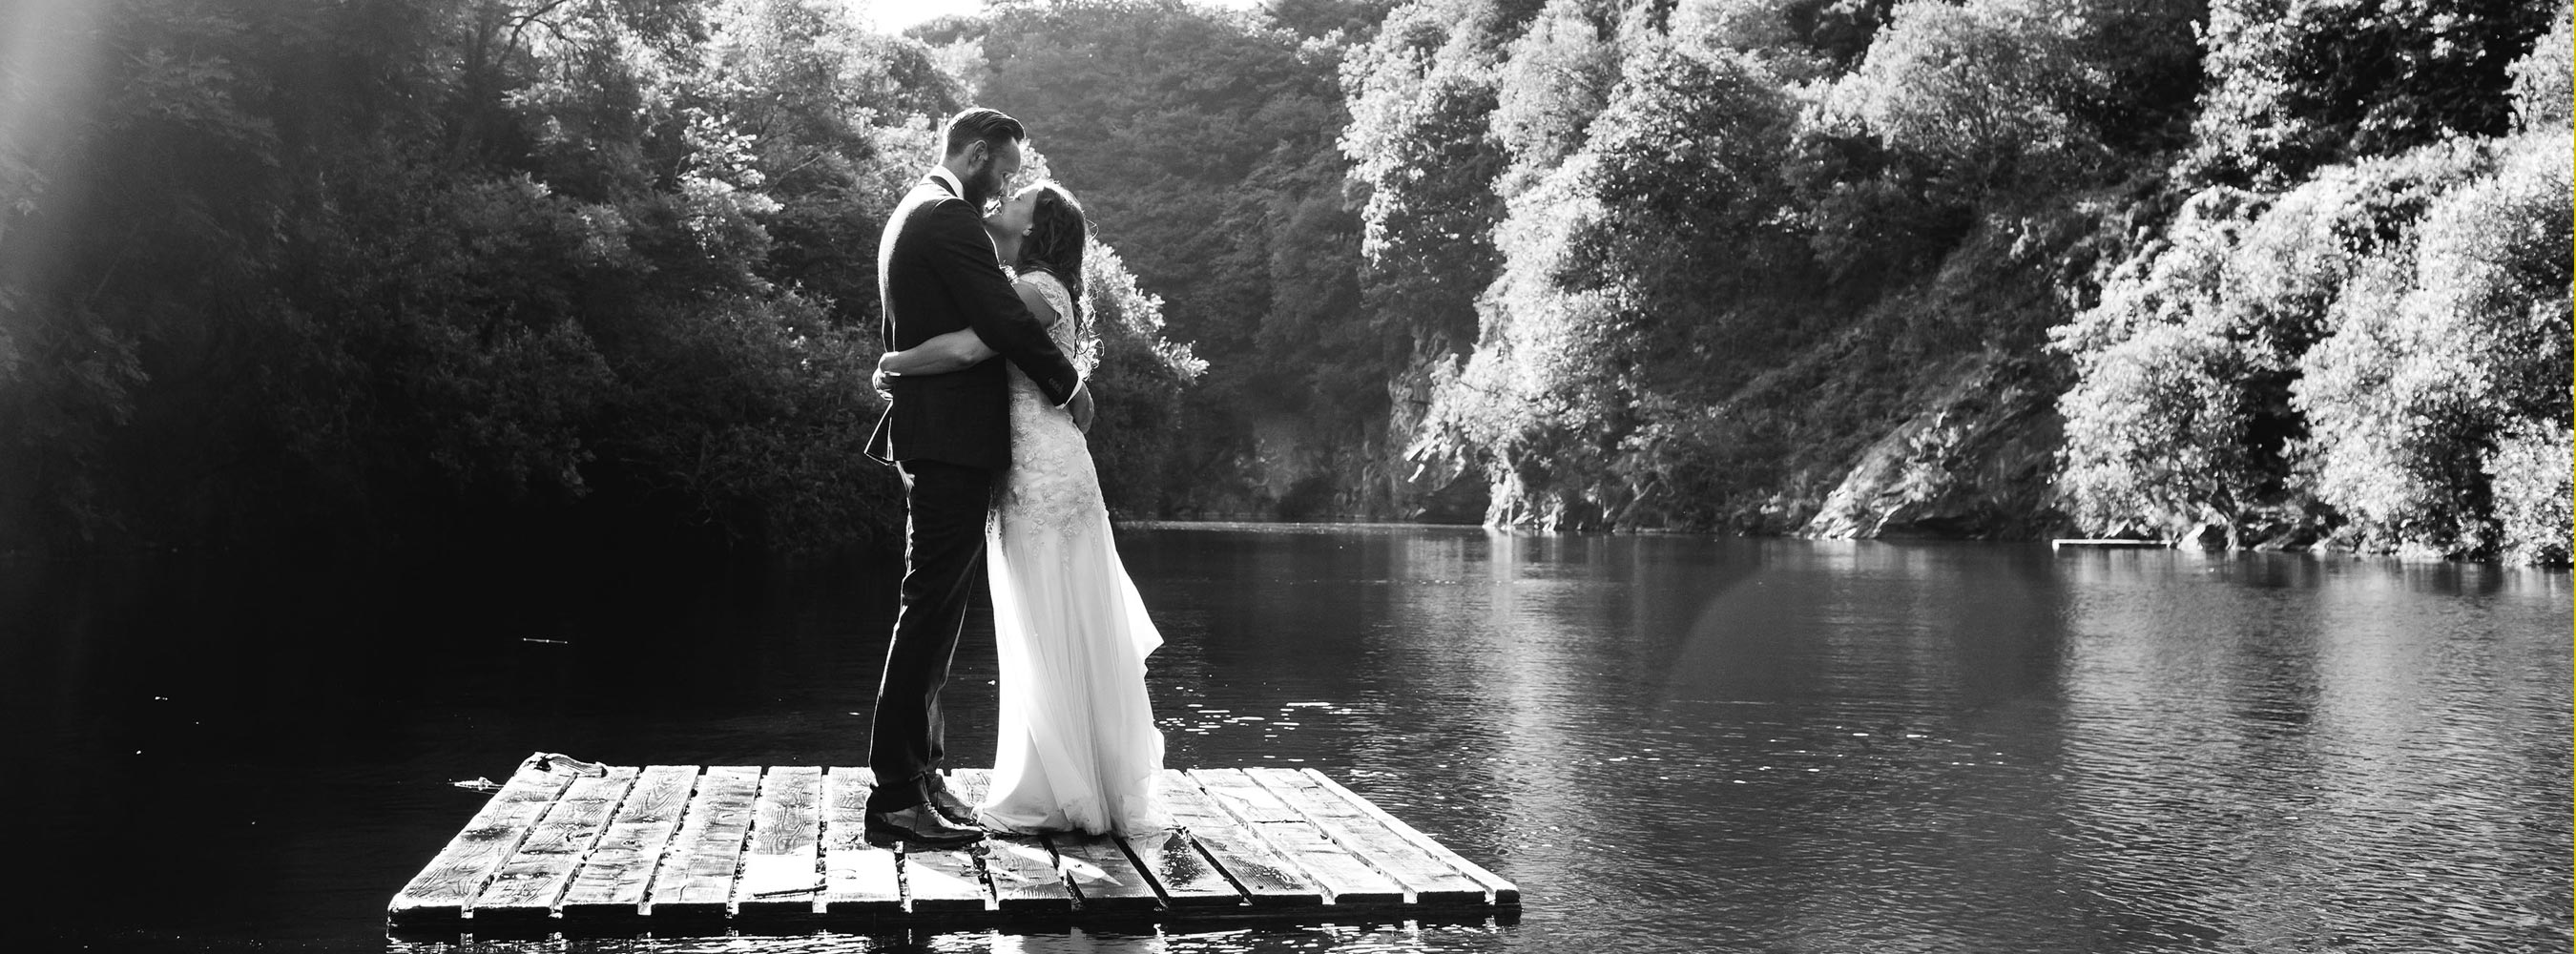 Bride and Groom floating on lake